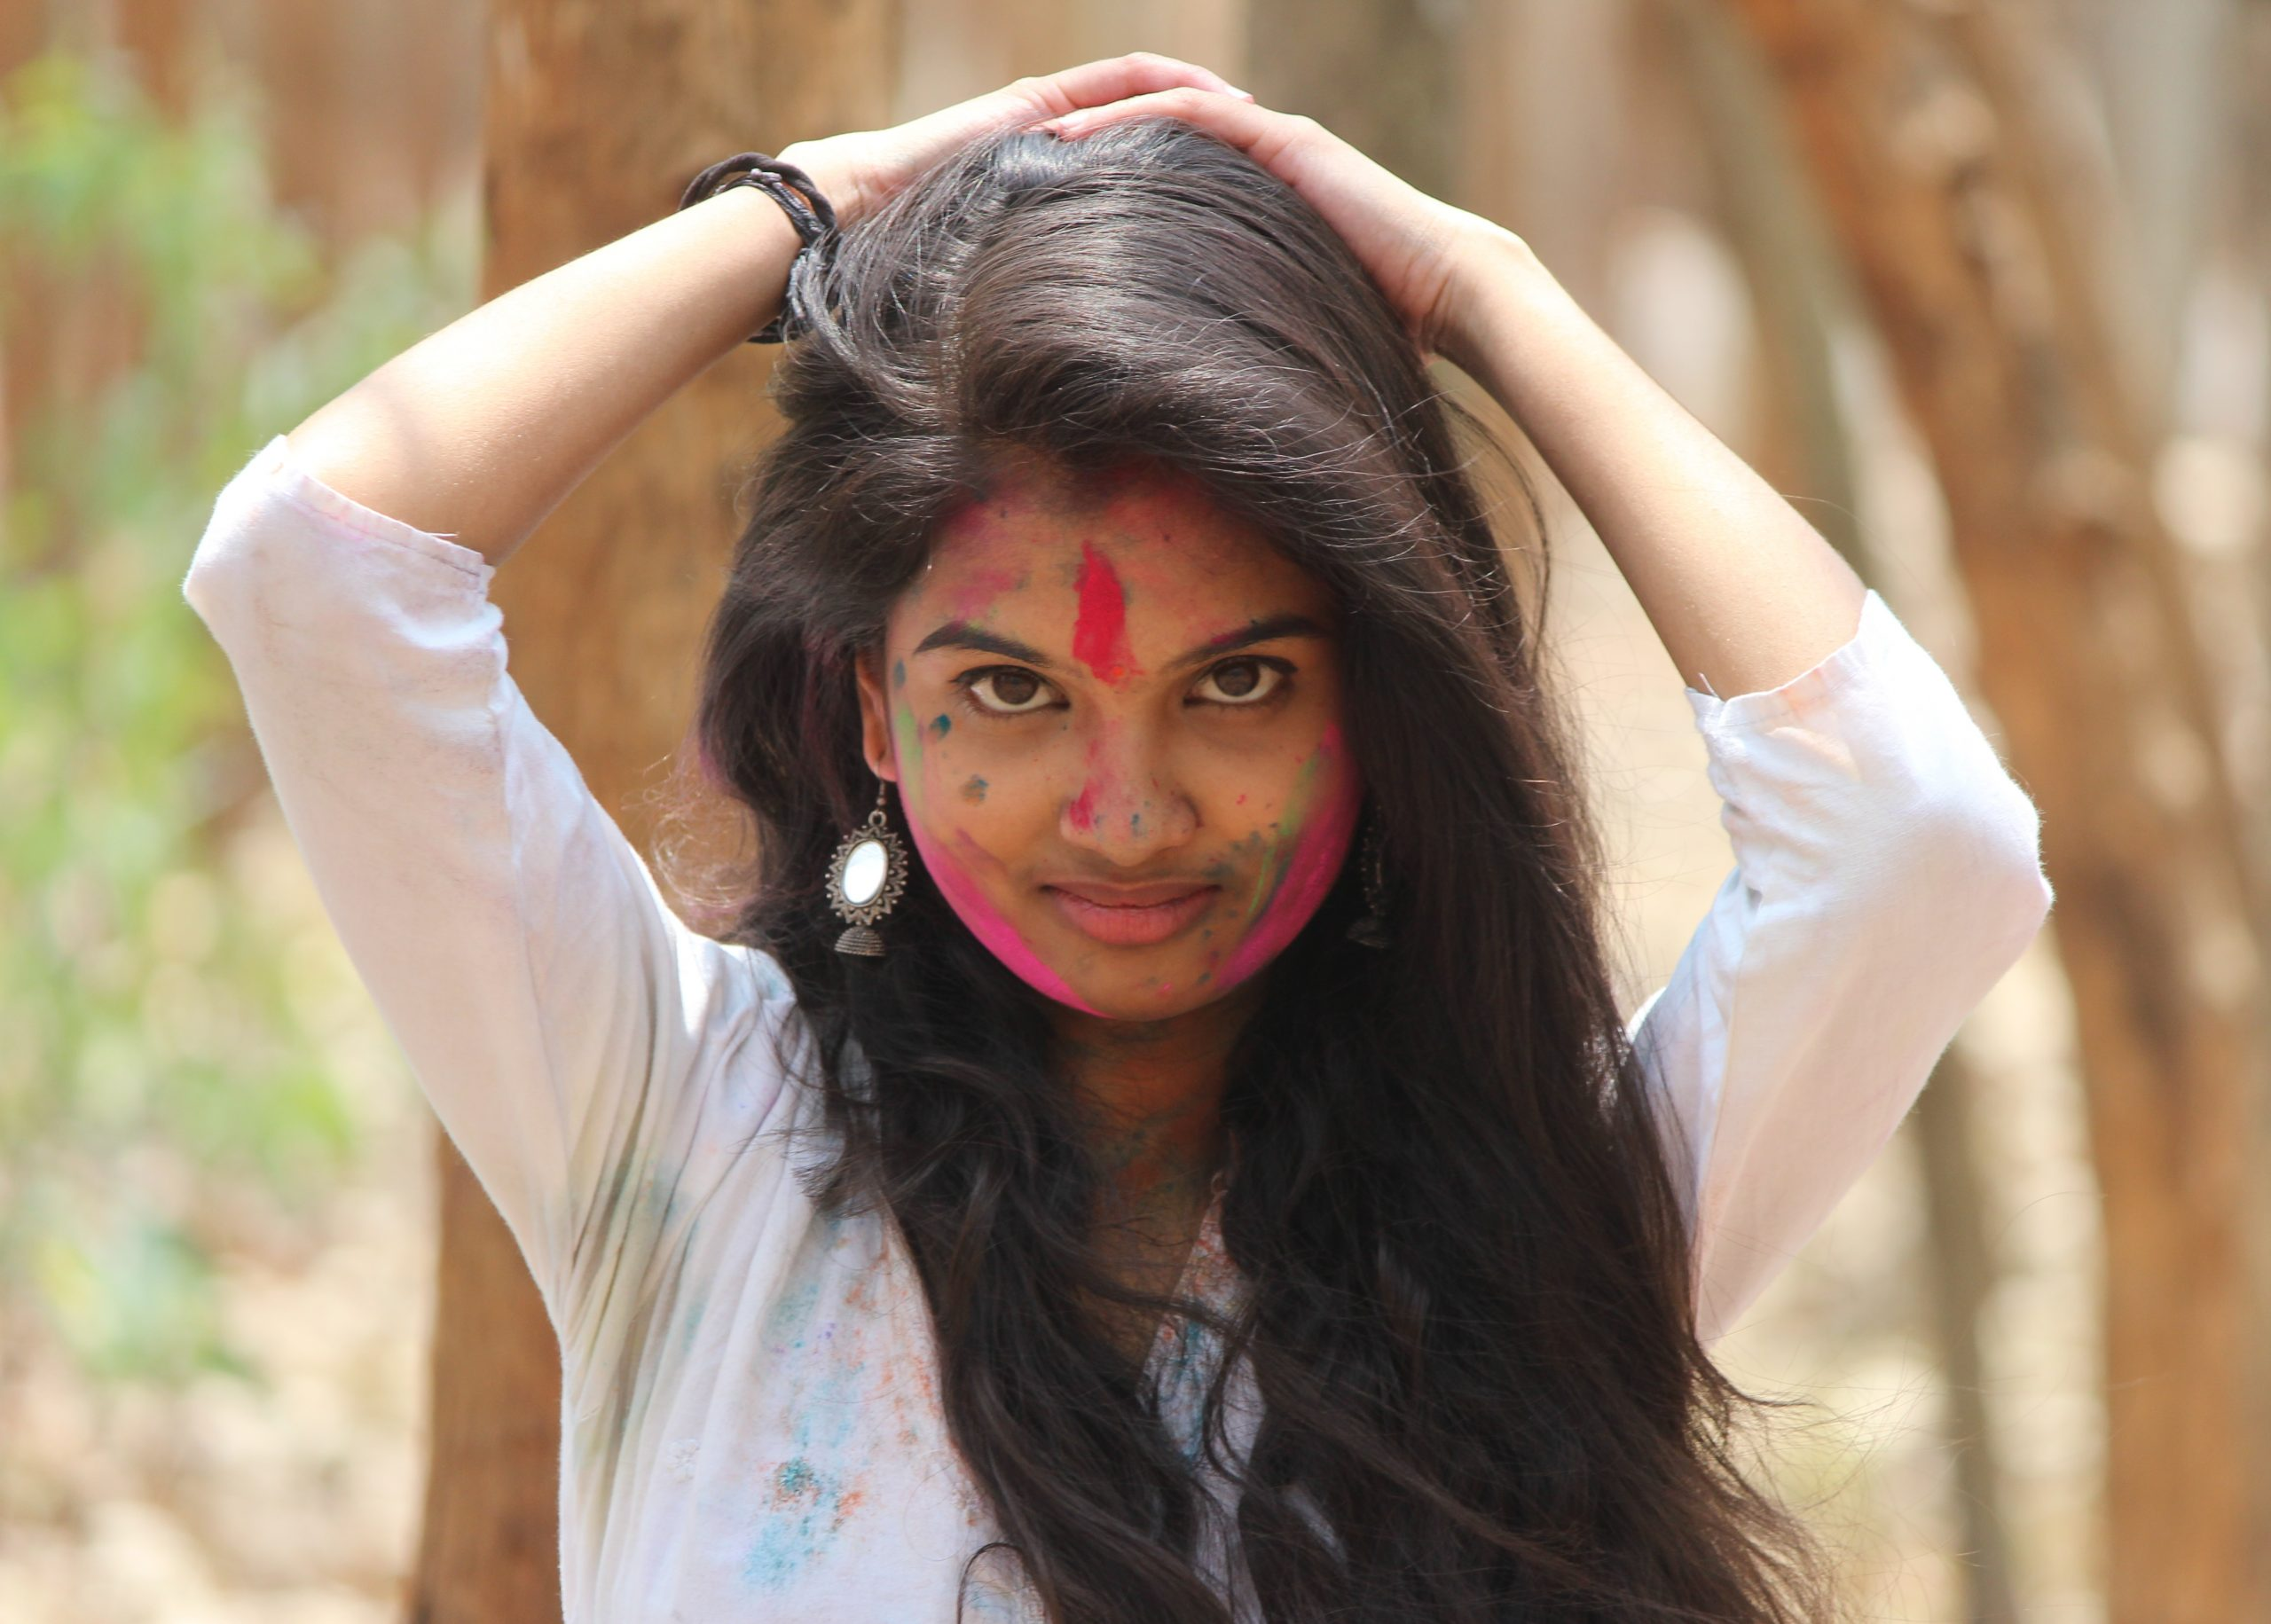 An Indian girl during Holi festival